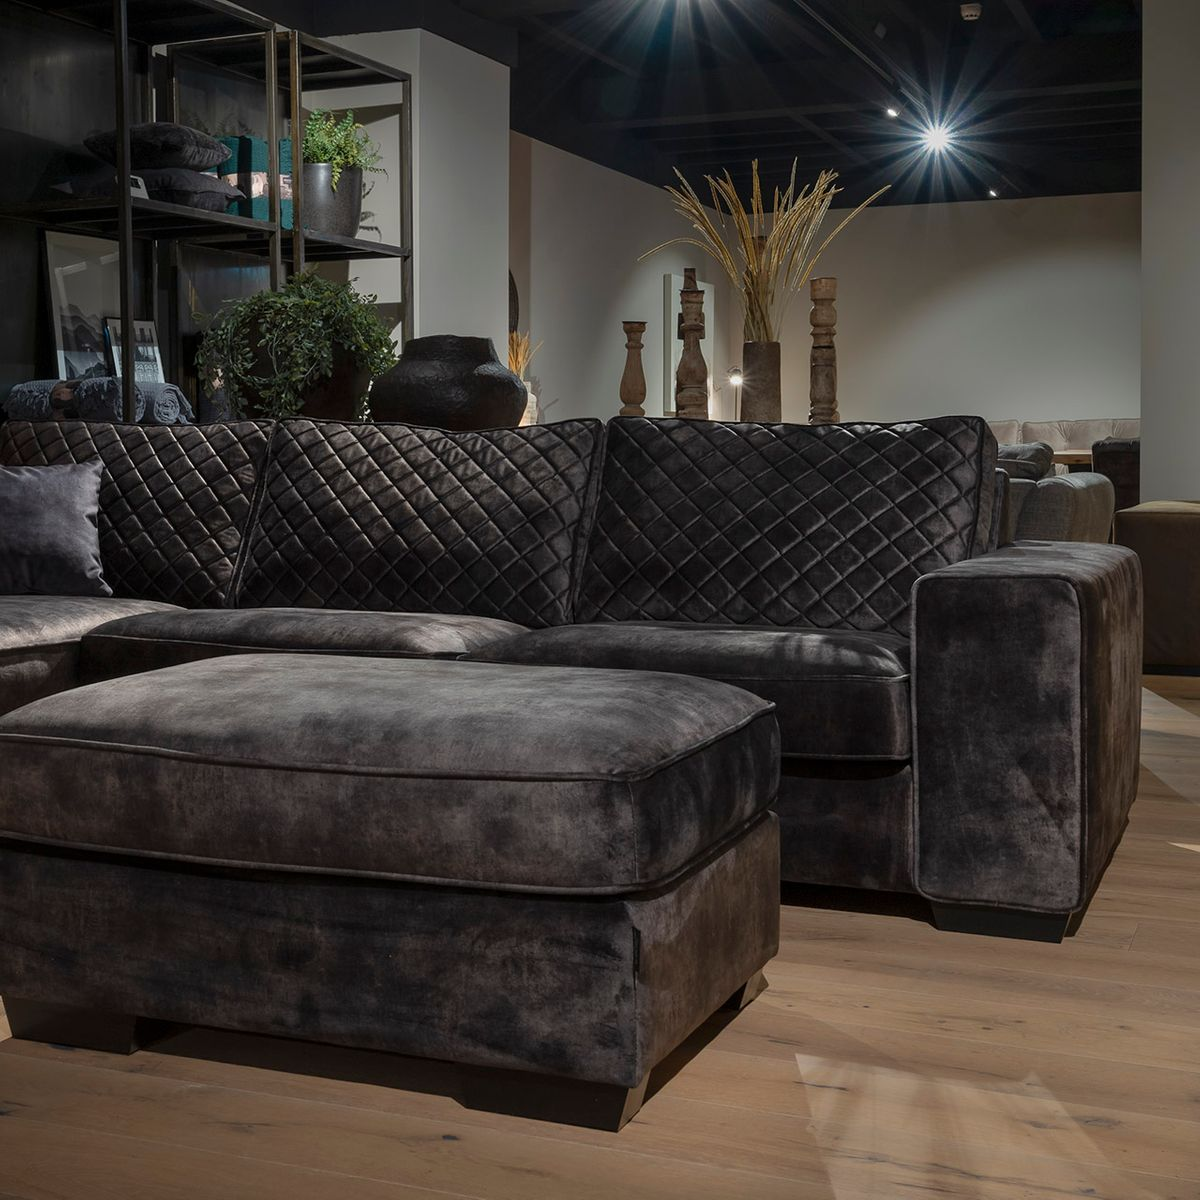 UrbanSofa Firenca Brooklyn Sevilla Dark Brown